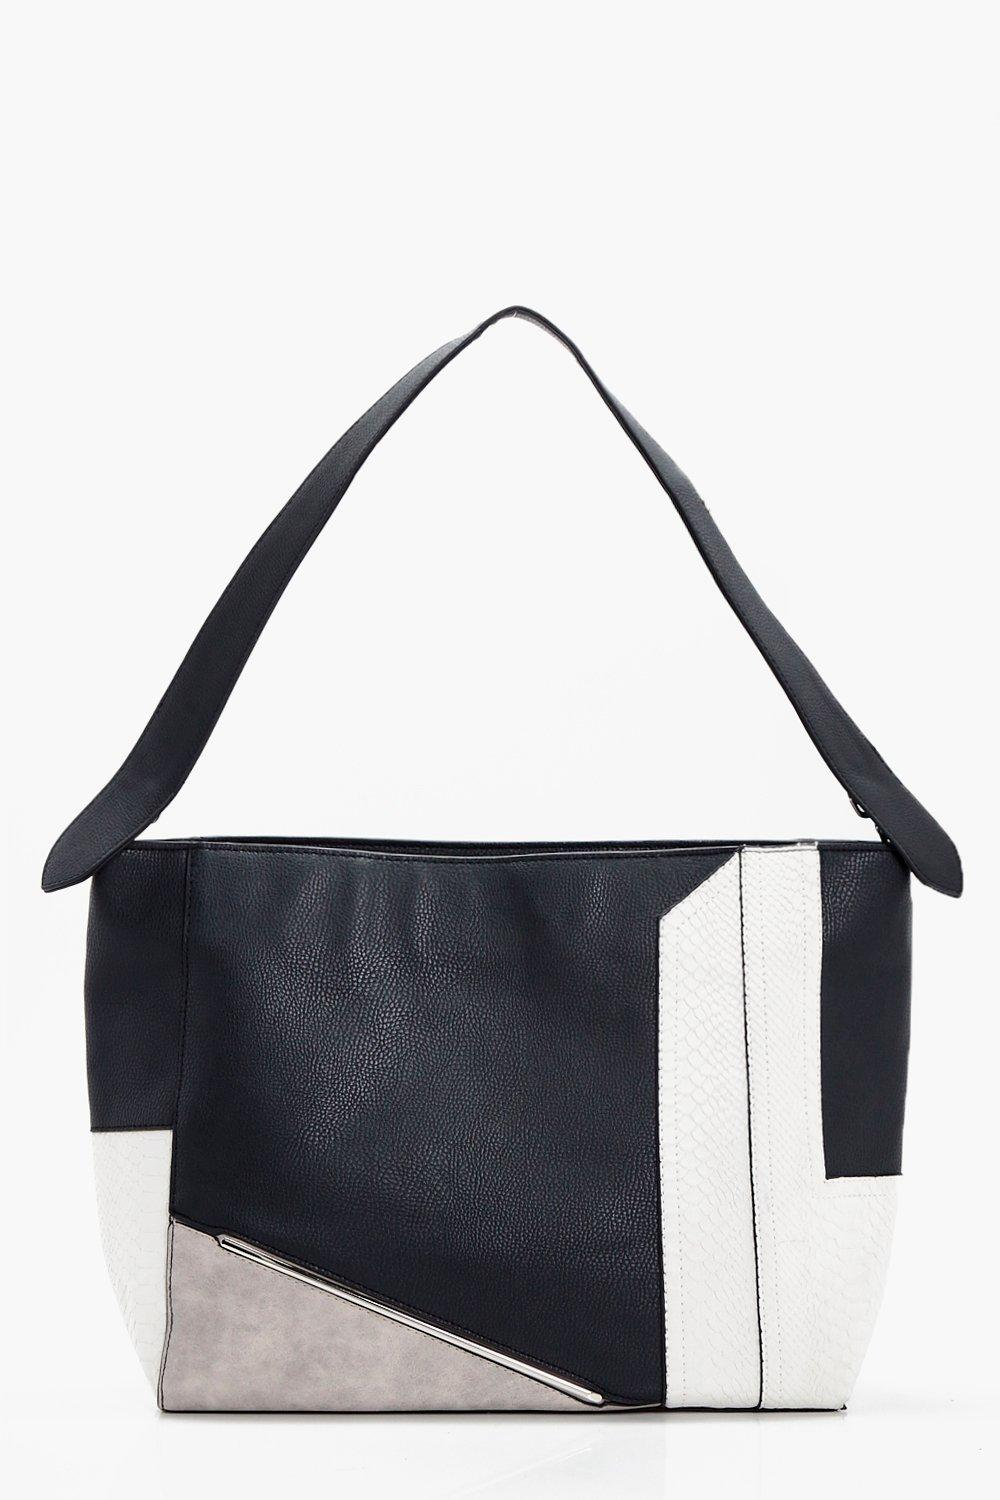 Multi Panel Tote - black - Millie Multi Panel Tote